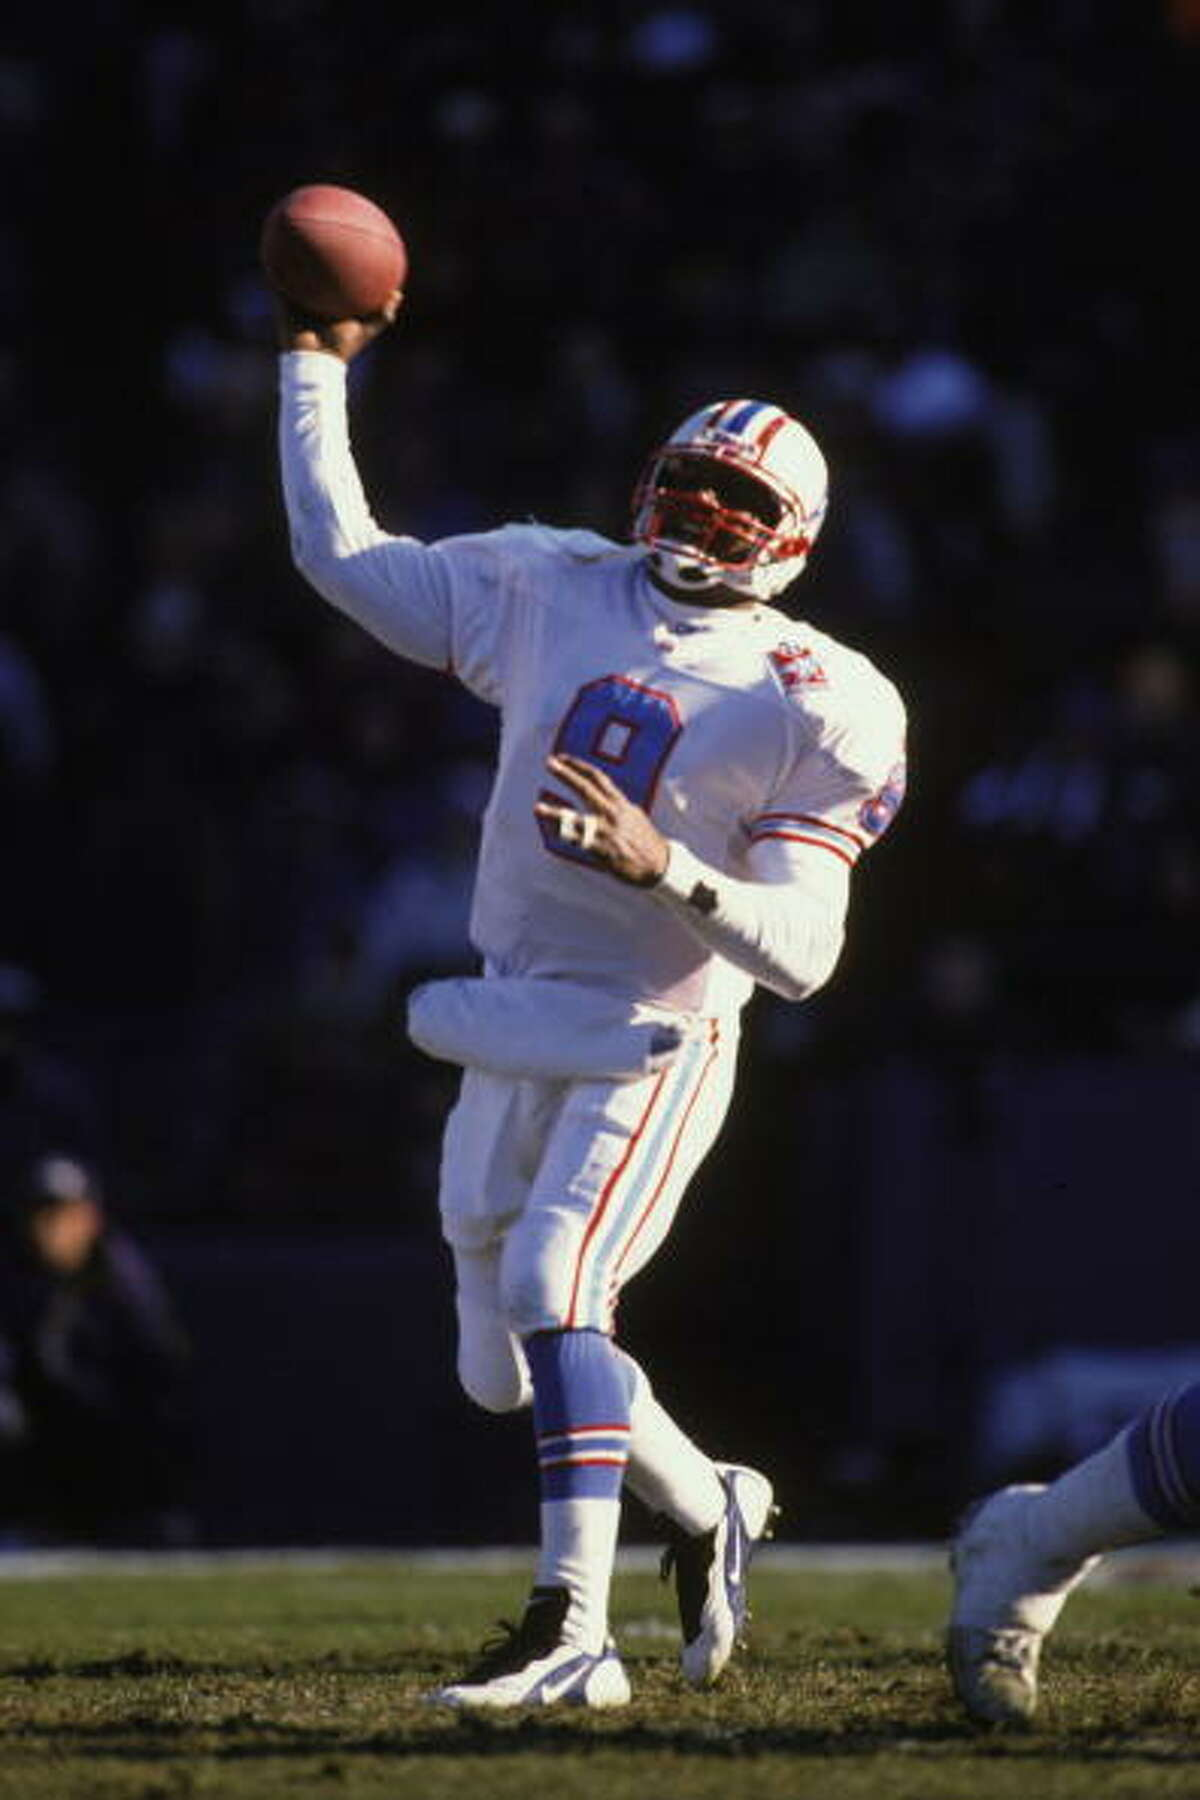 BALTIMORE, MD - DECEMBER 22: Steve McNair #9 of the Houston Oilers throws a pass during a NFL football game against the Baltimore Ravens on December 22, 1996 at Memorial Stadium in Baltimore, Maryland.